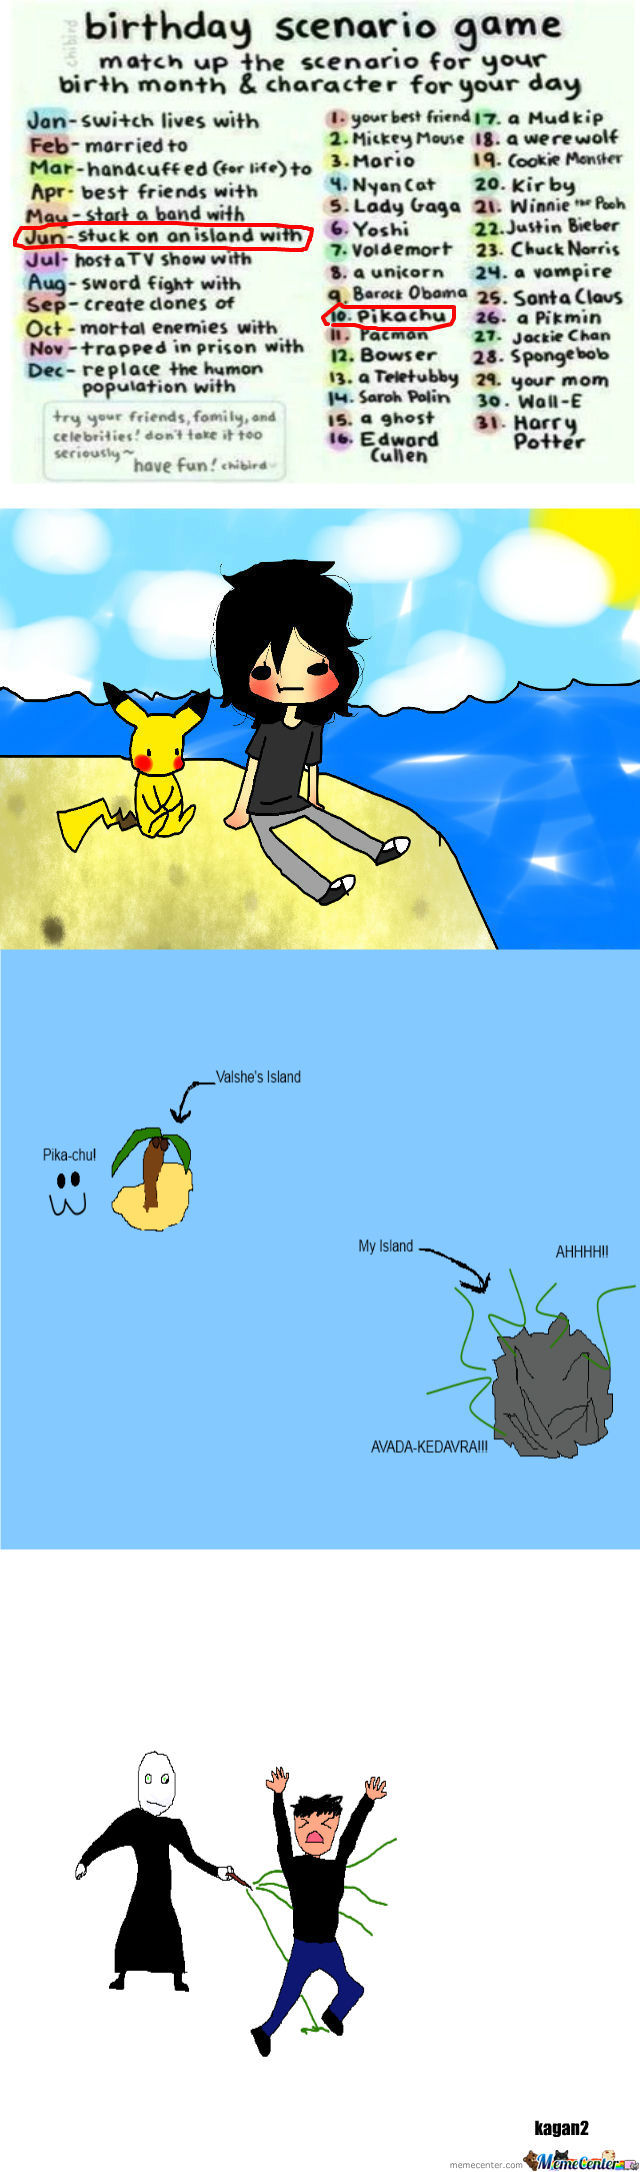 [RMX] Stuck On An Island With Pikachu? 030